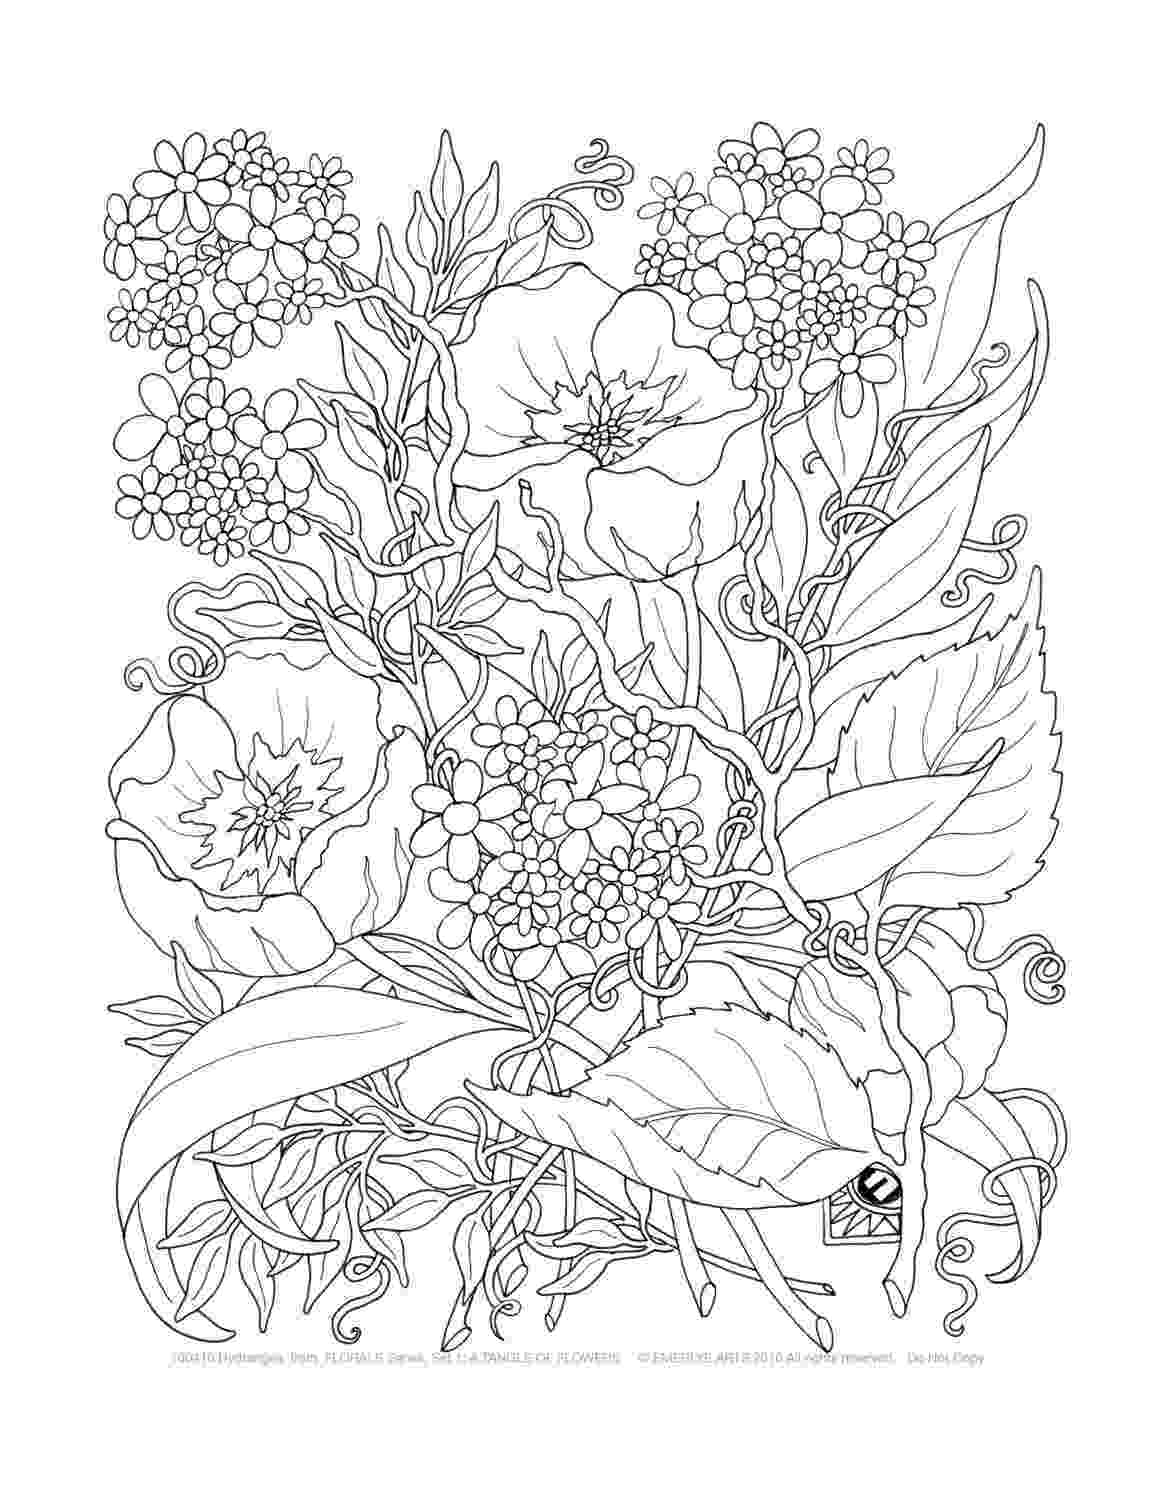 printable flower coloring pages for adults adult coloring a tangle of flowers set of 8 by emerlyearts coloring for printable adults flower pages